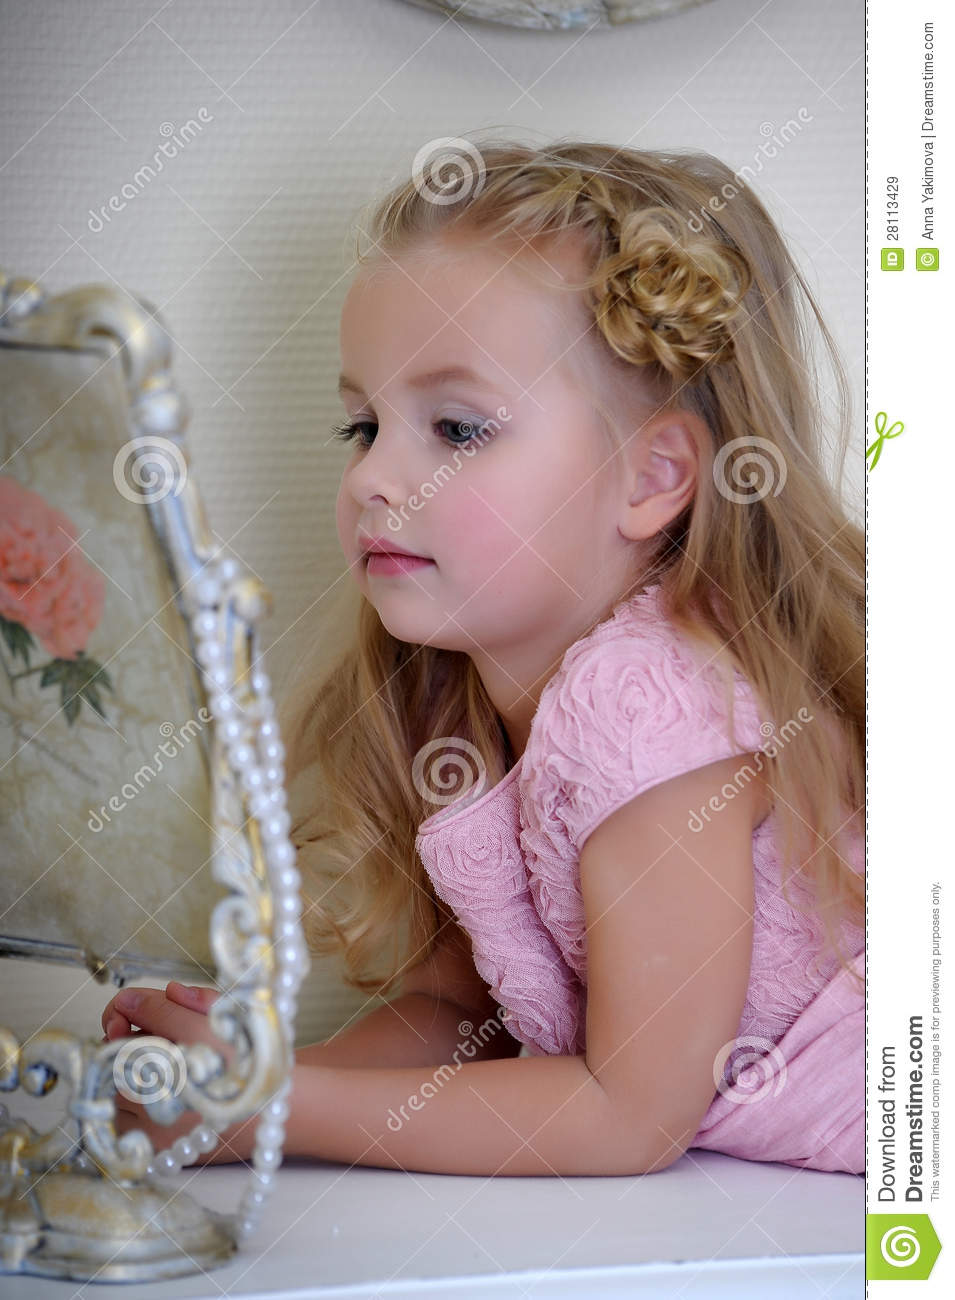 The little girl next to a mirror royalty free stock images for Mirror 7th girl